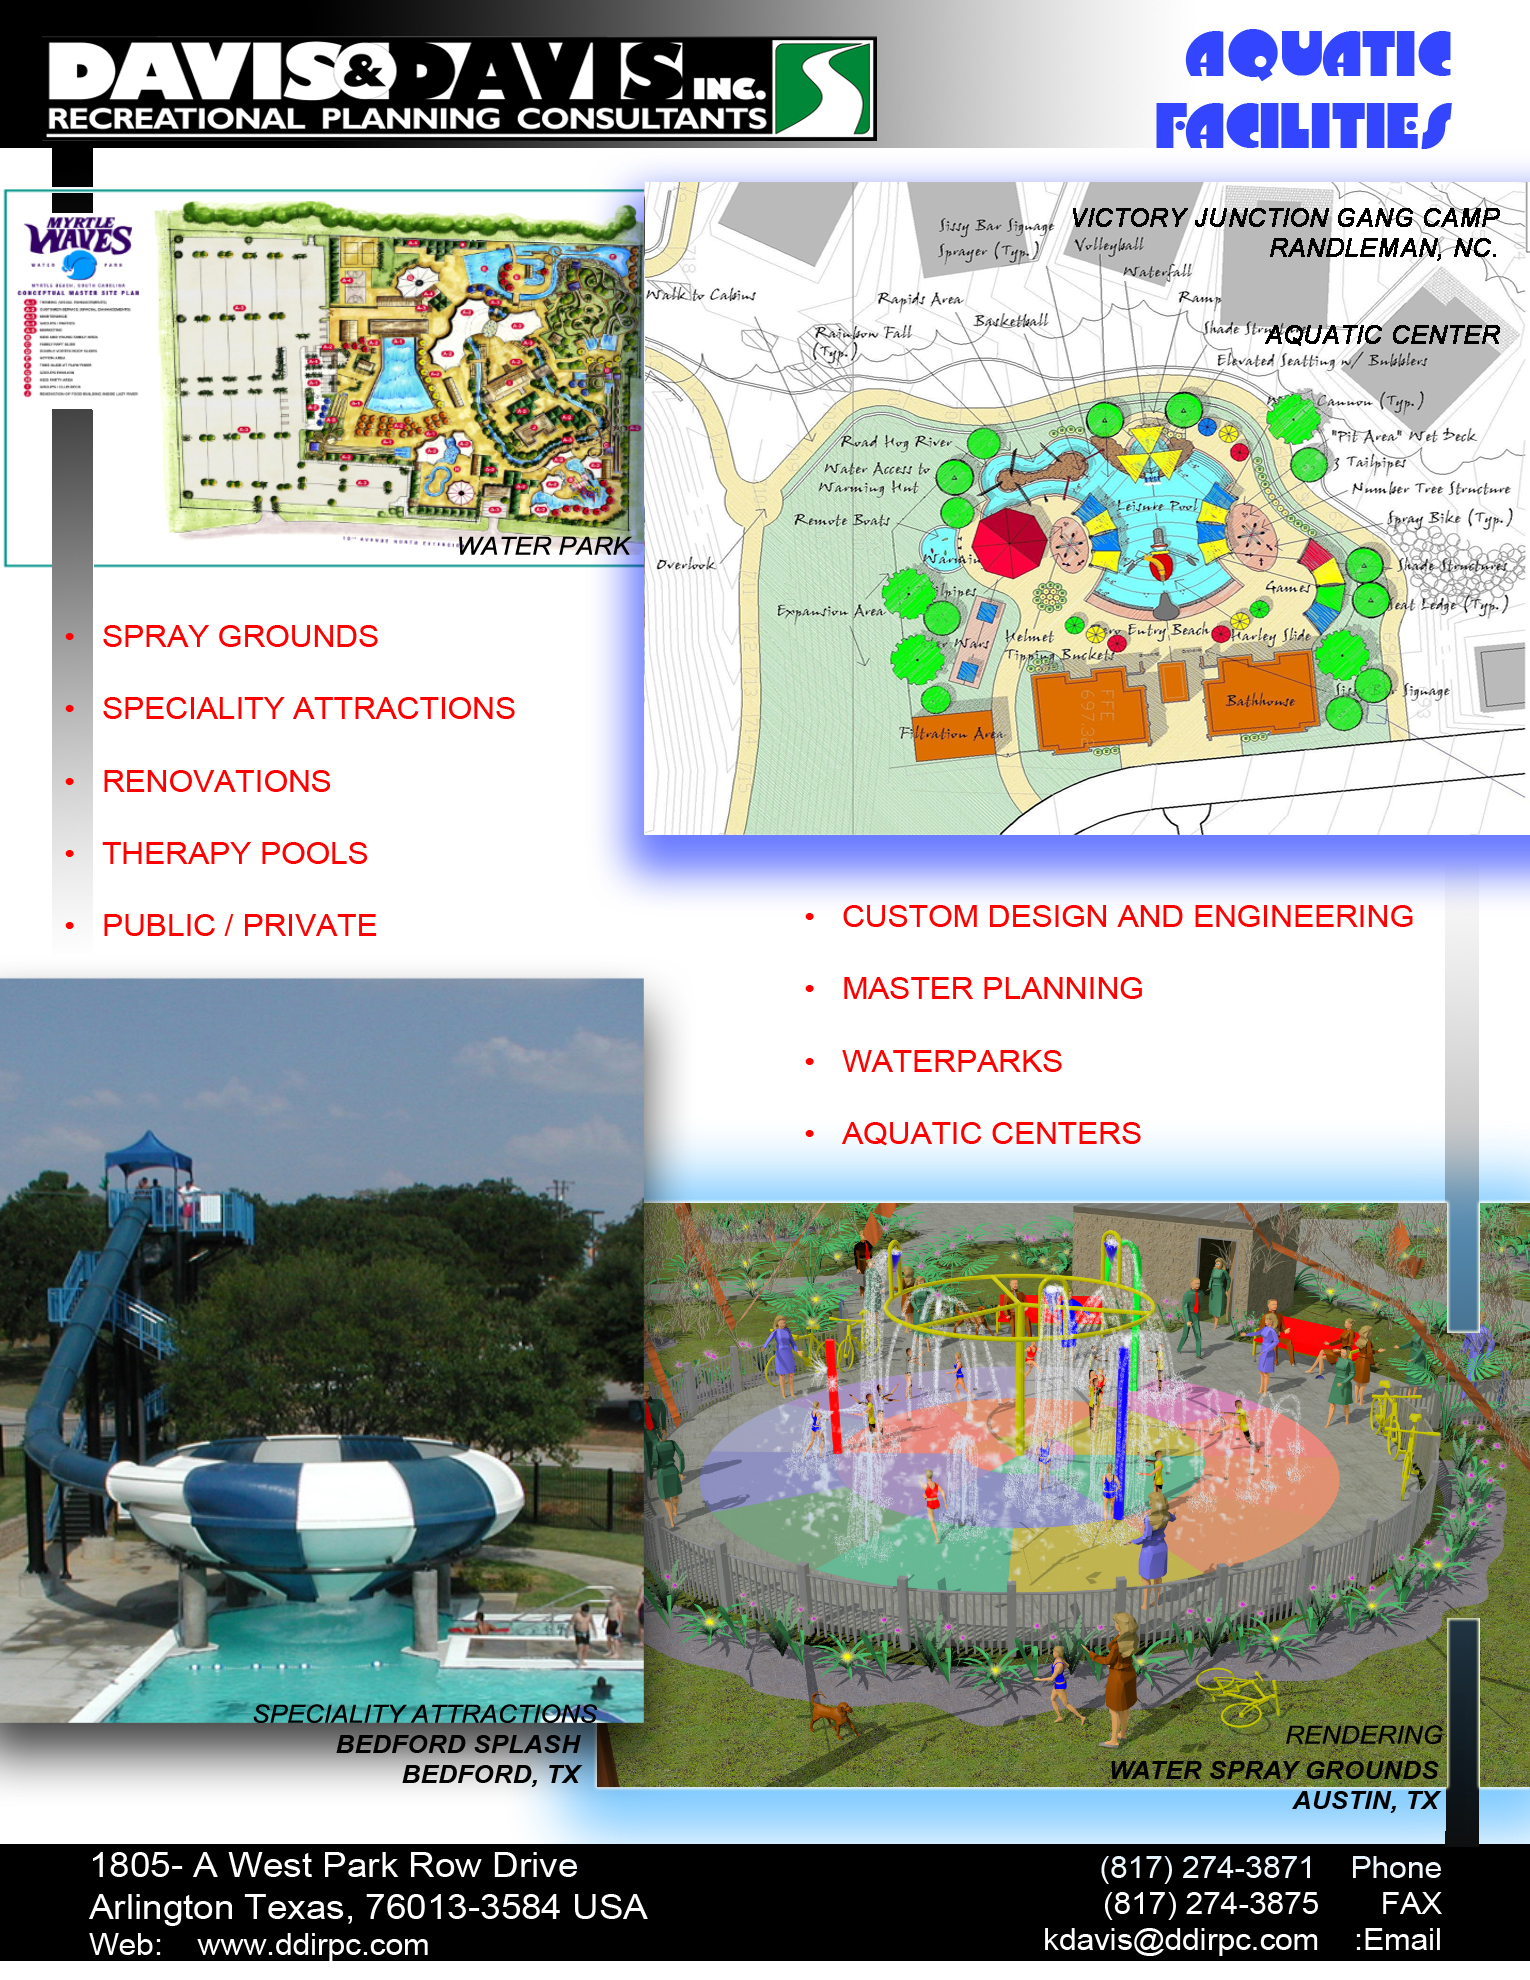 AQUATIC FACILITIES.jpg